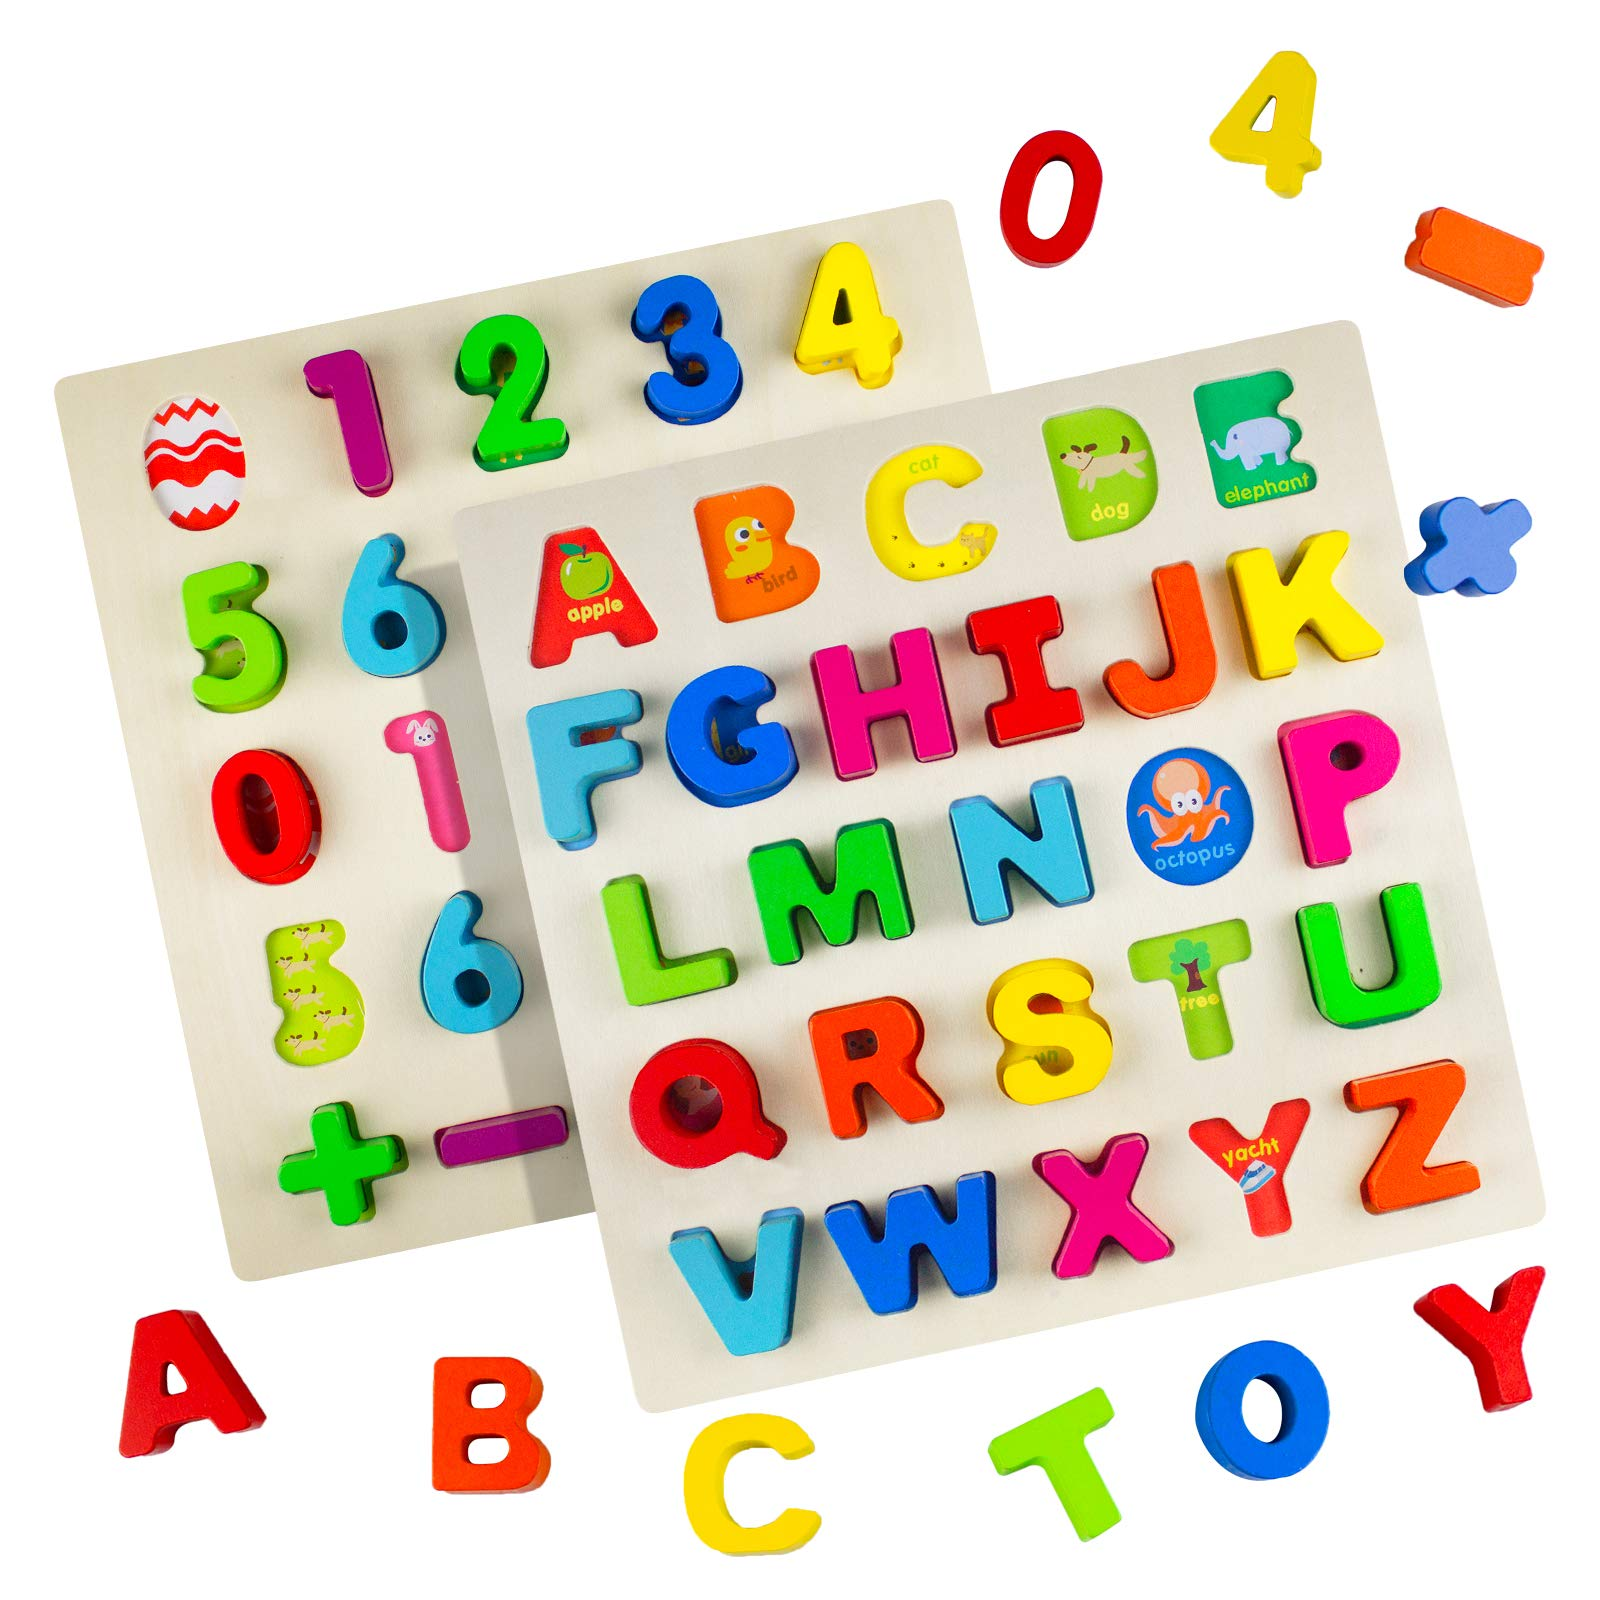 Timy Wooden Alphabet Puzzle and Number Puzzle Set for Toddlers, ABC Puzzle Board for Kids by Timy